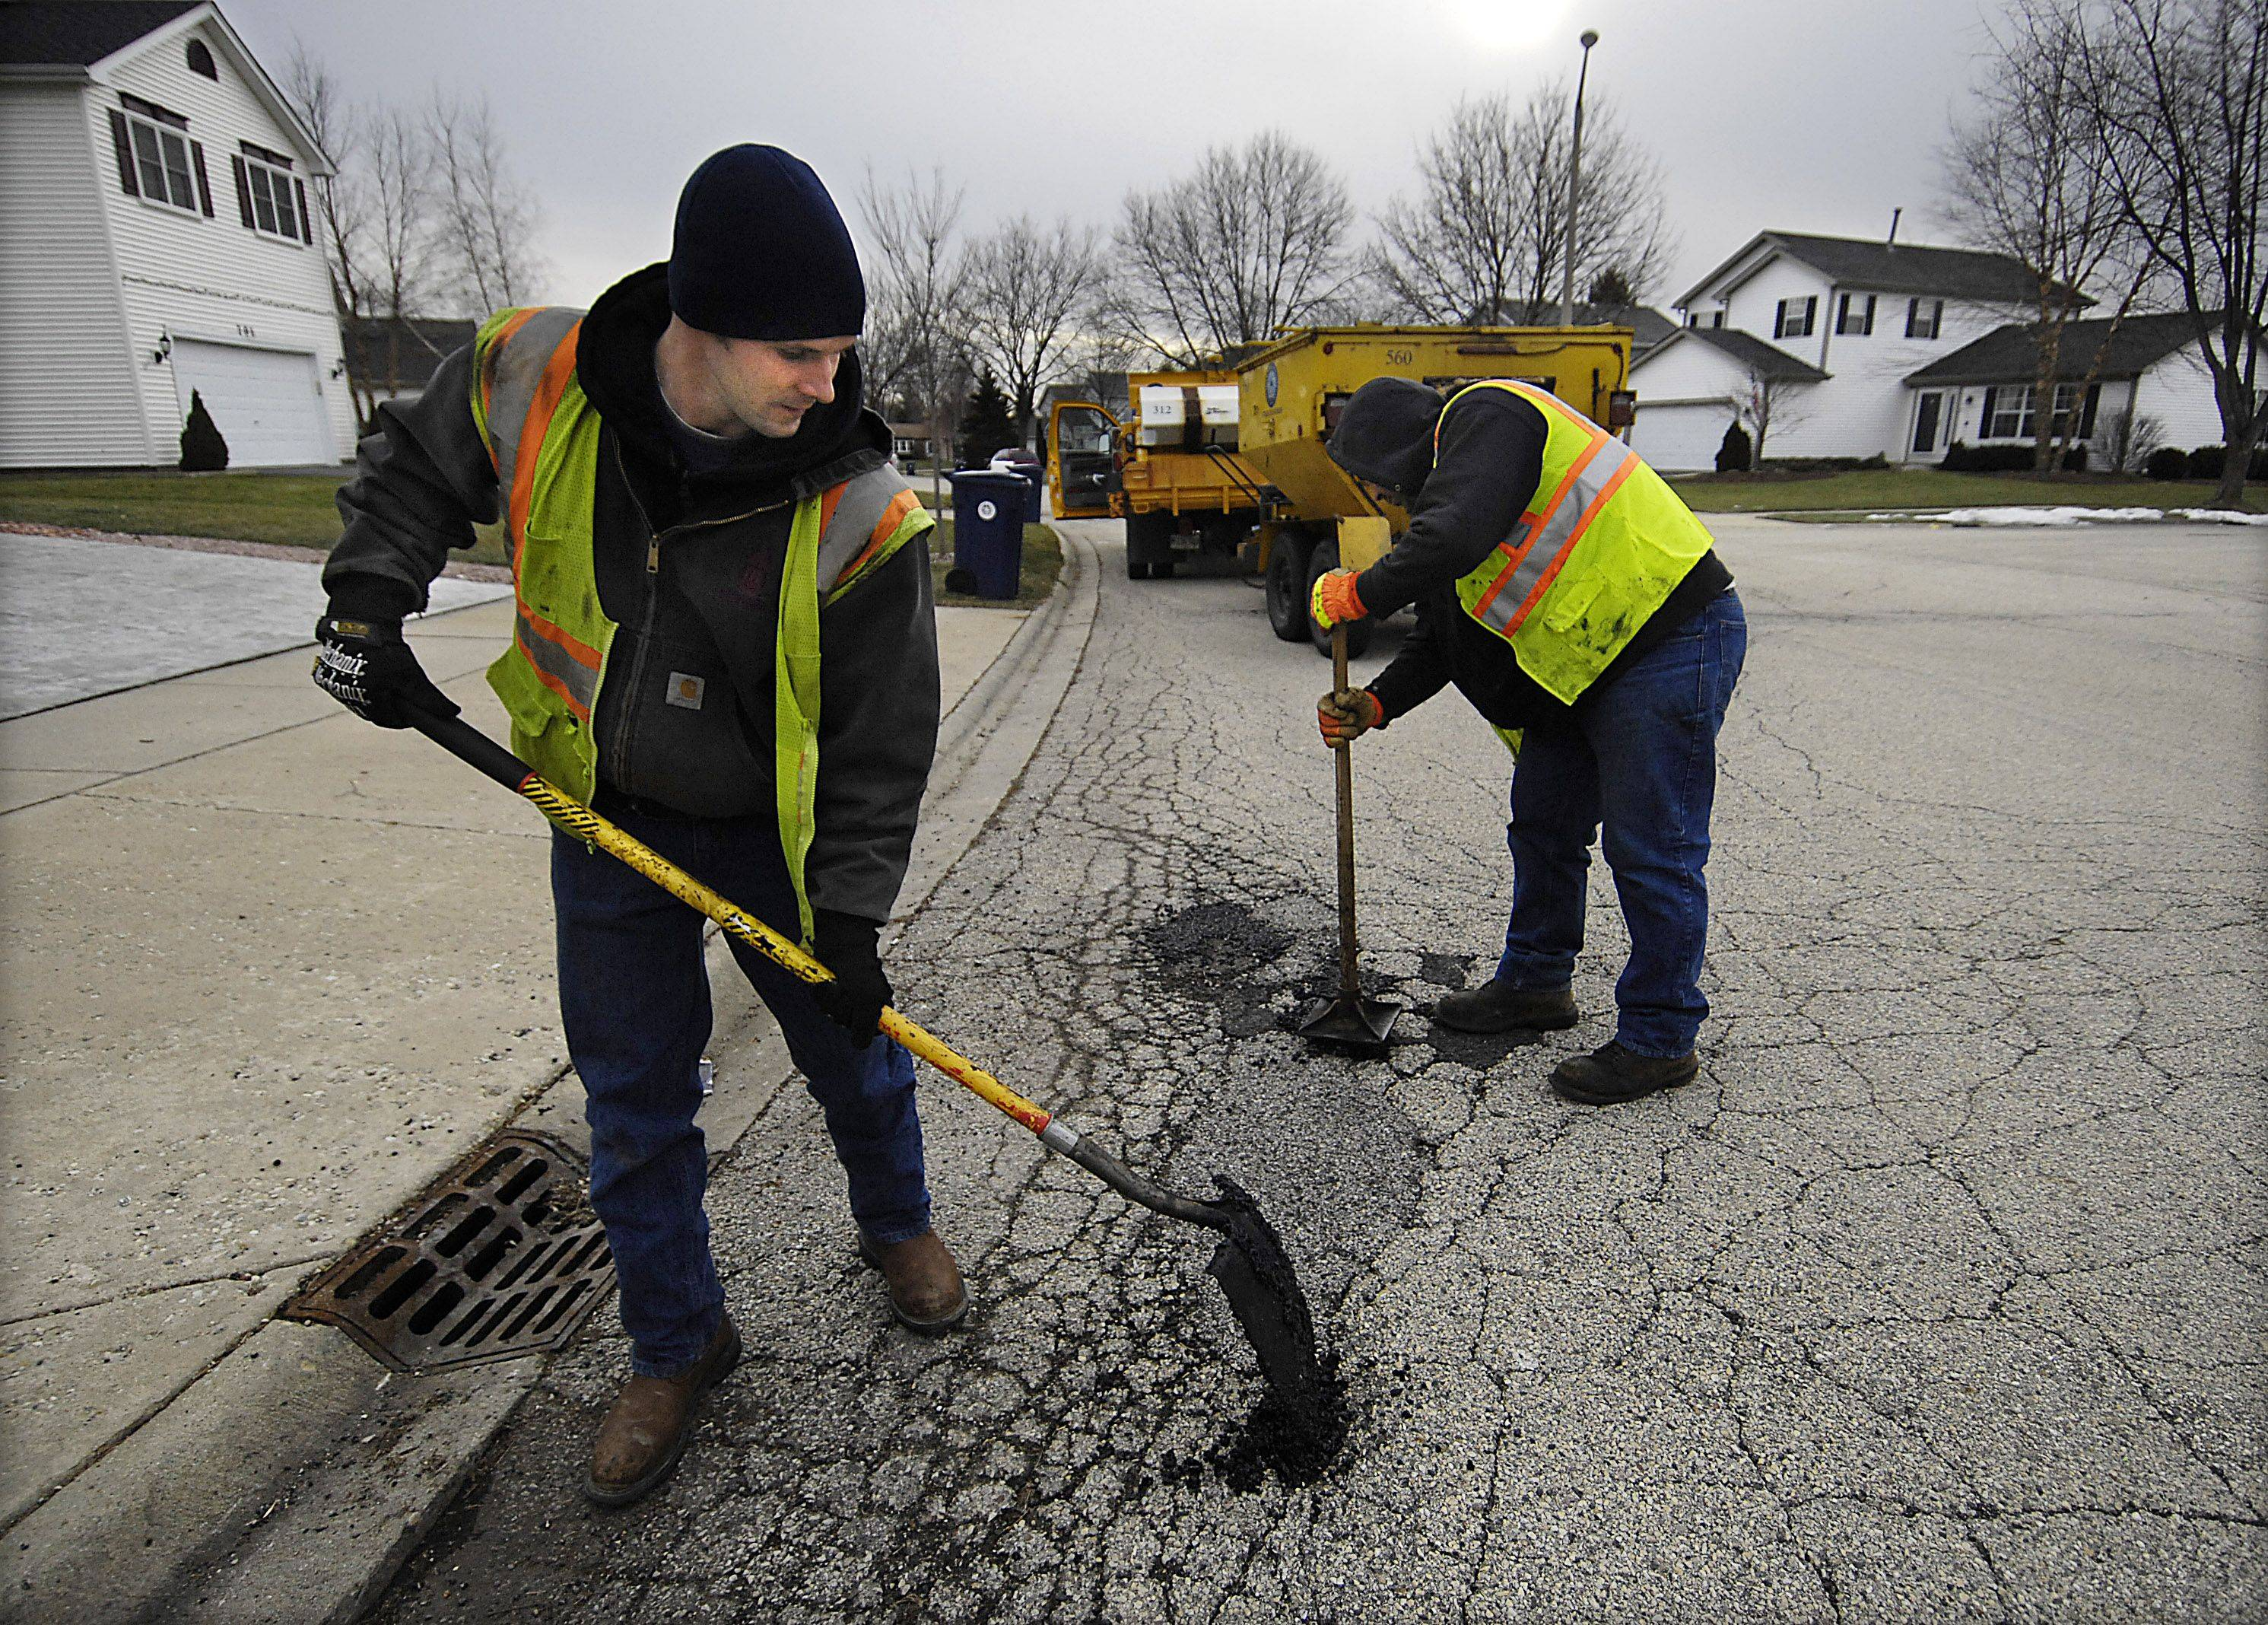 Nick Sheppard shovels asphalt filler as Rick Kempe tamps the mixture tightly into potholes on Glacier Parkway in Algonquin Monday. They fill as many as 100 potholes per day during the winter months.